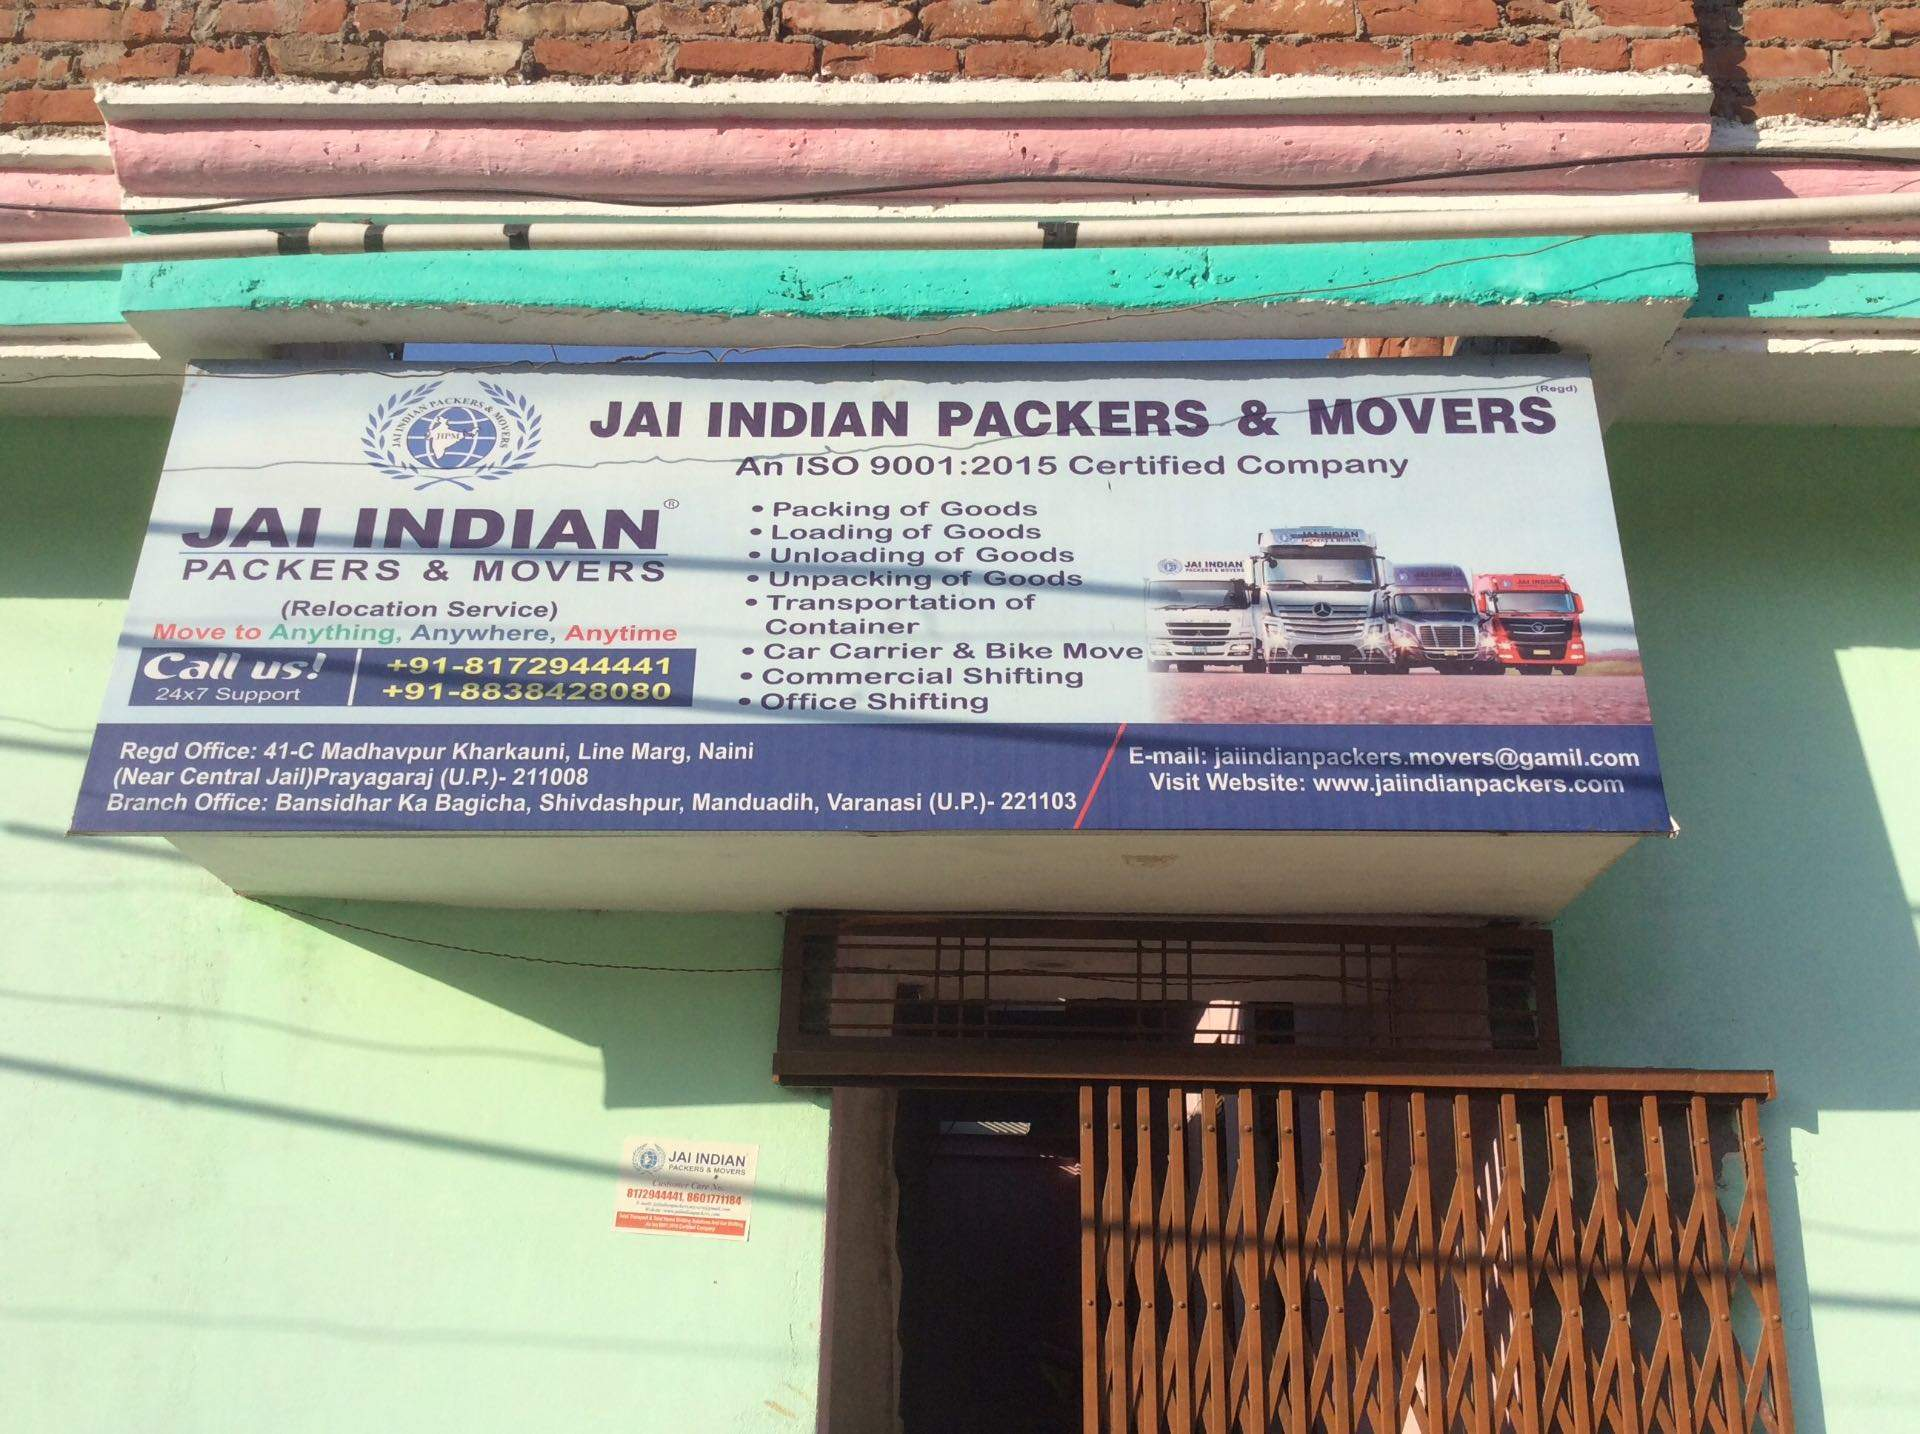 Jai Indian Packers & Movers